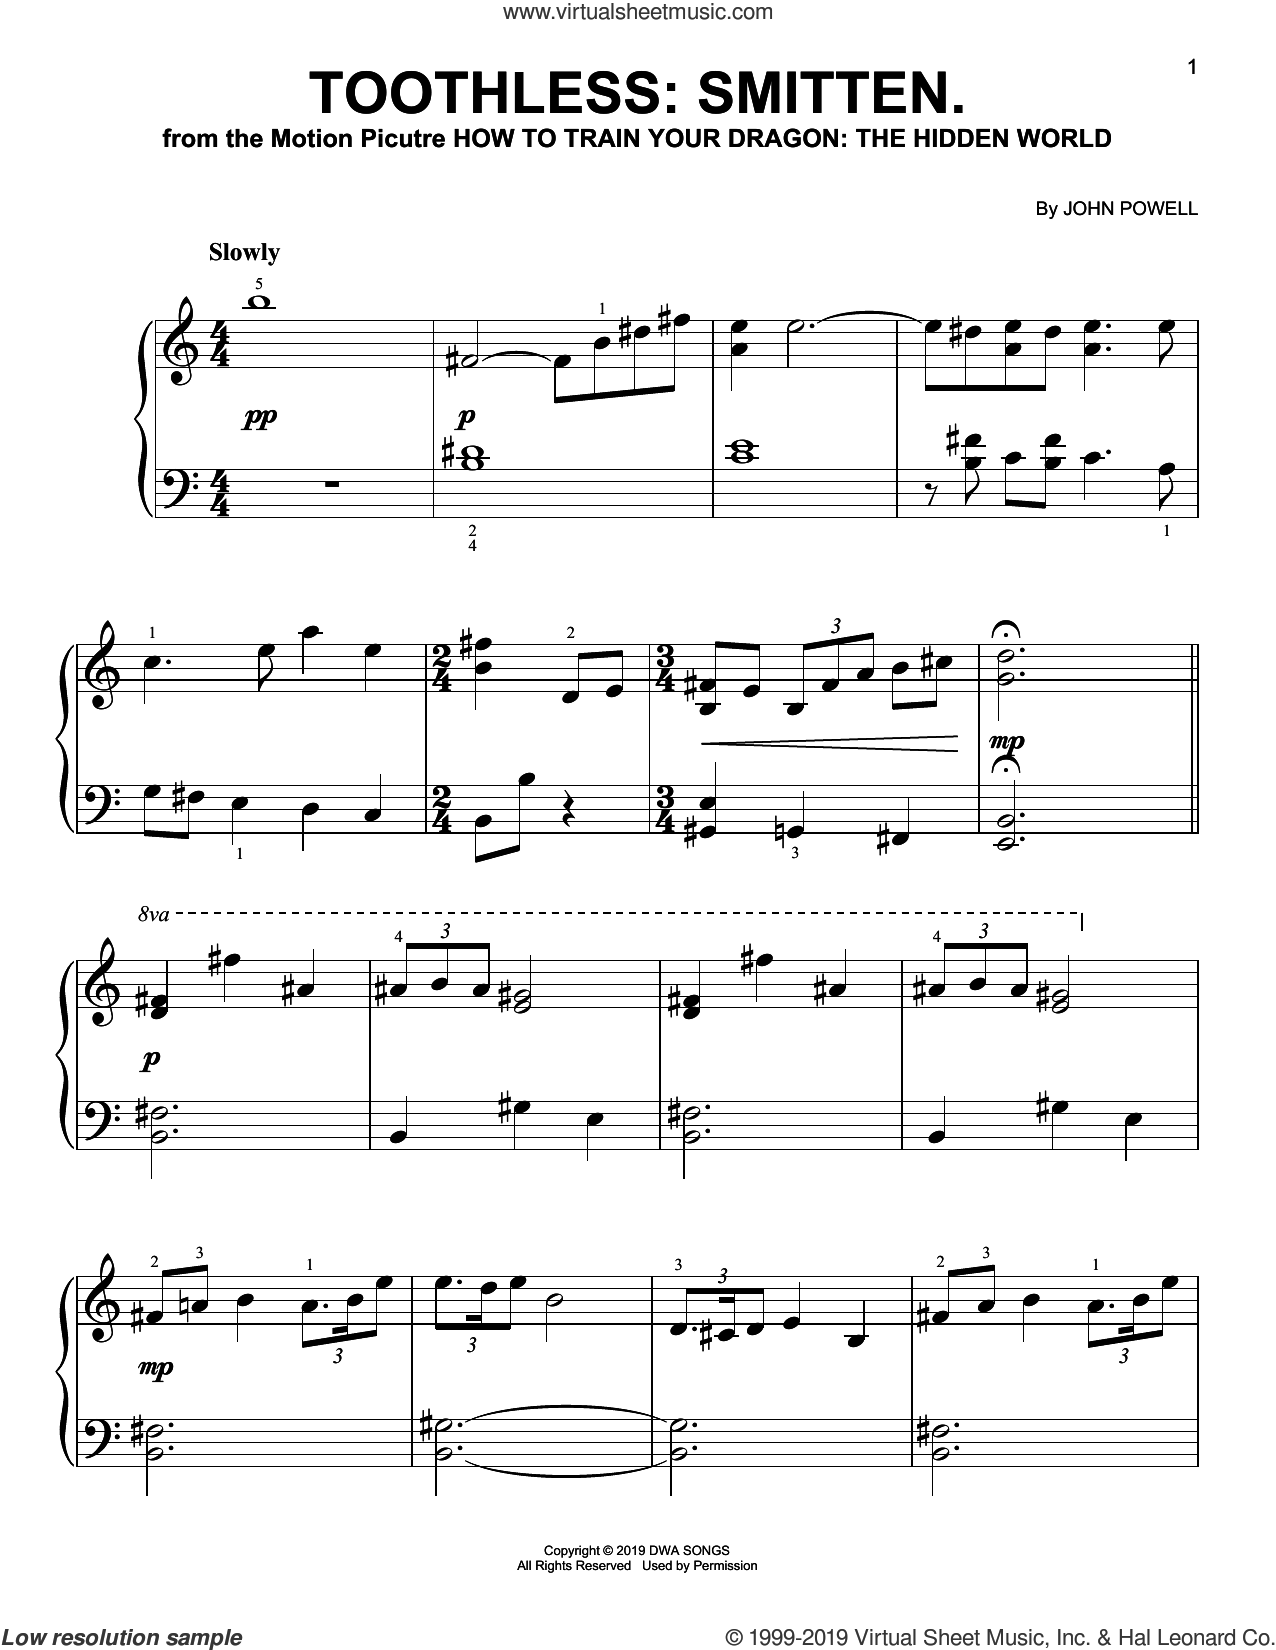 Toothless: Smitten. (from How to Train Your Dragon: The Hidden World) sheet music for piano solo by John Powell, easy skill level